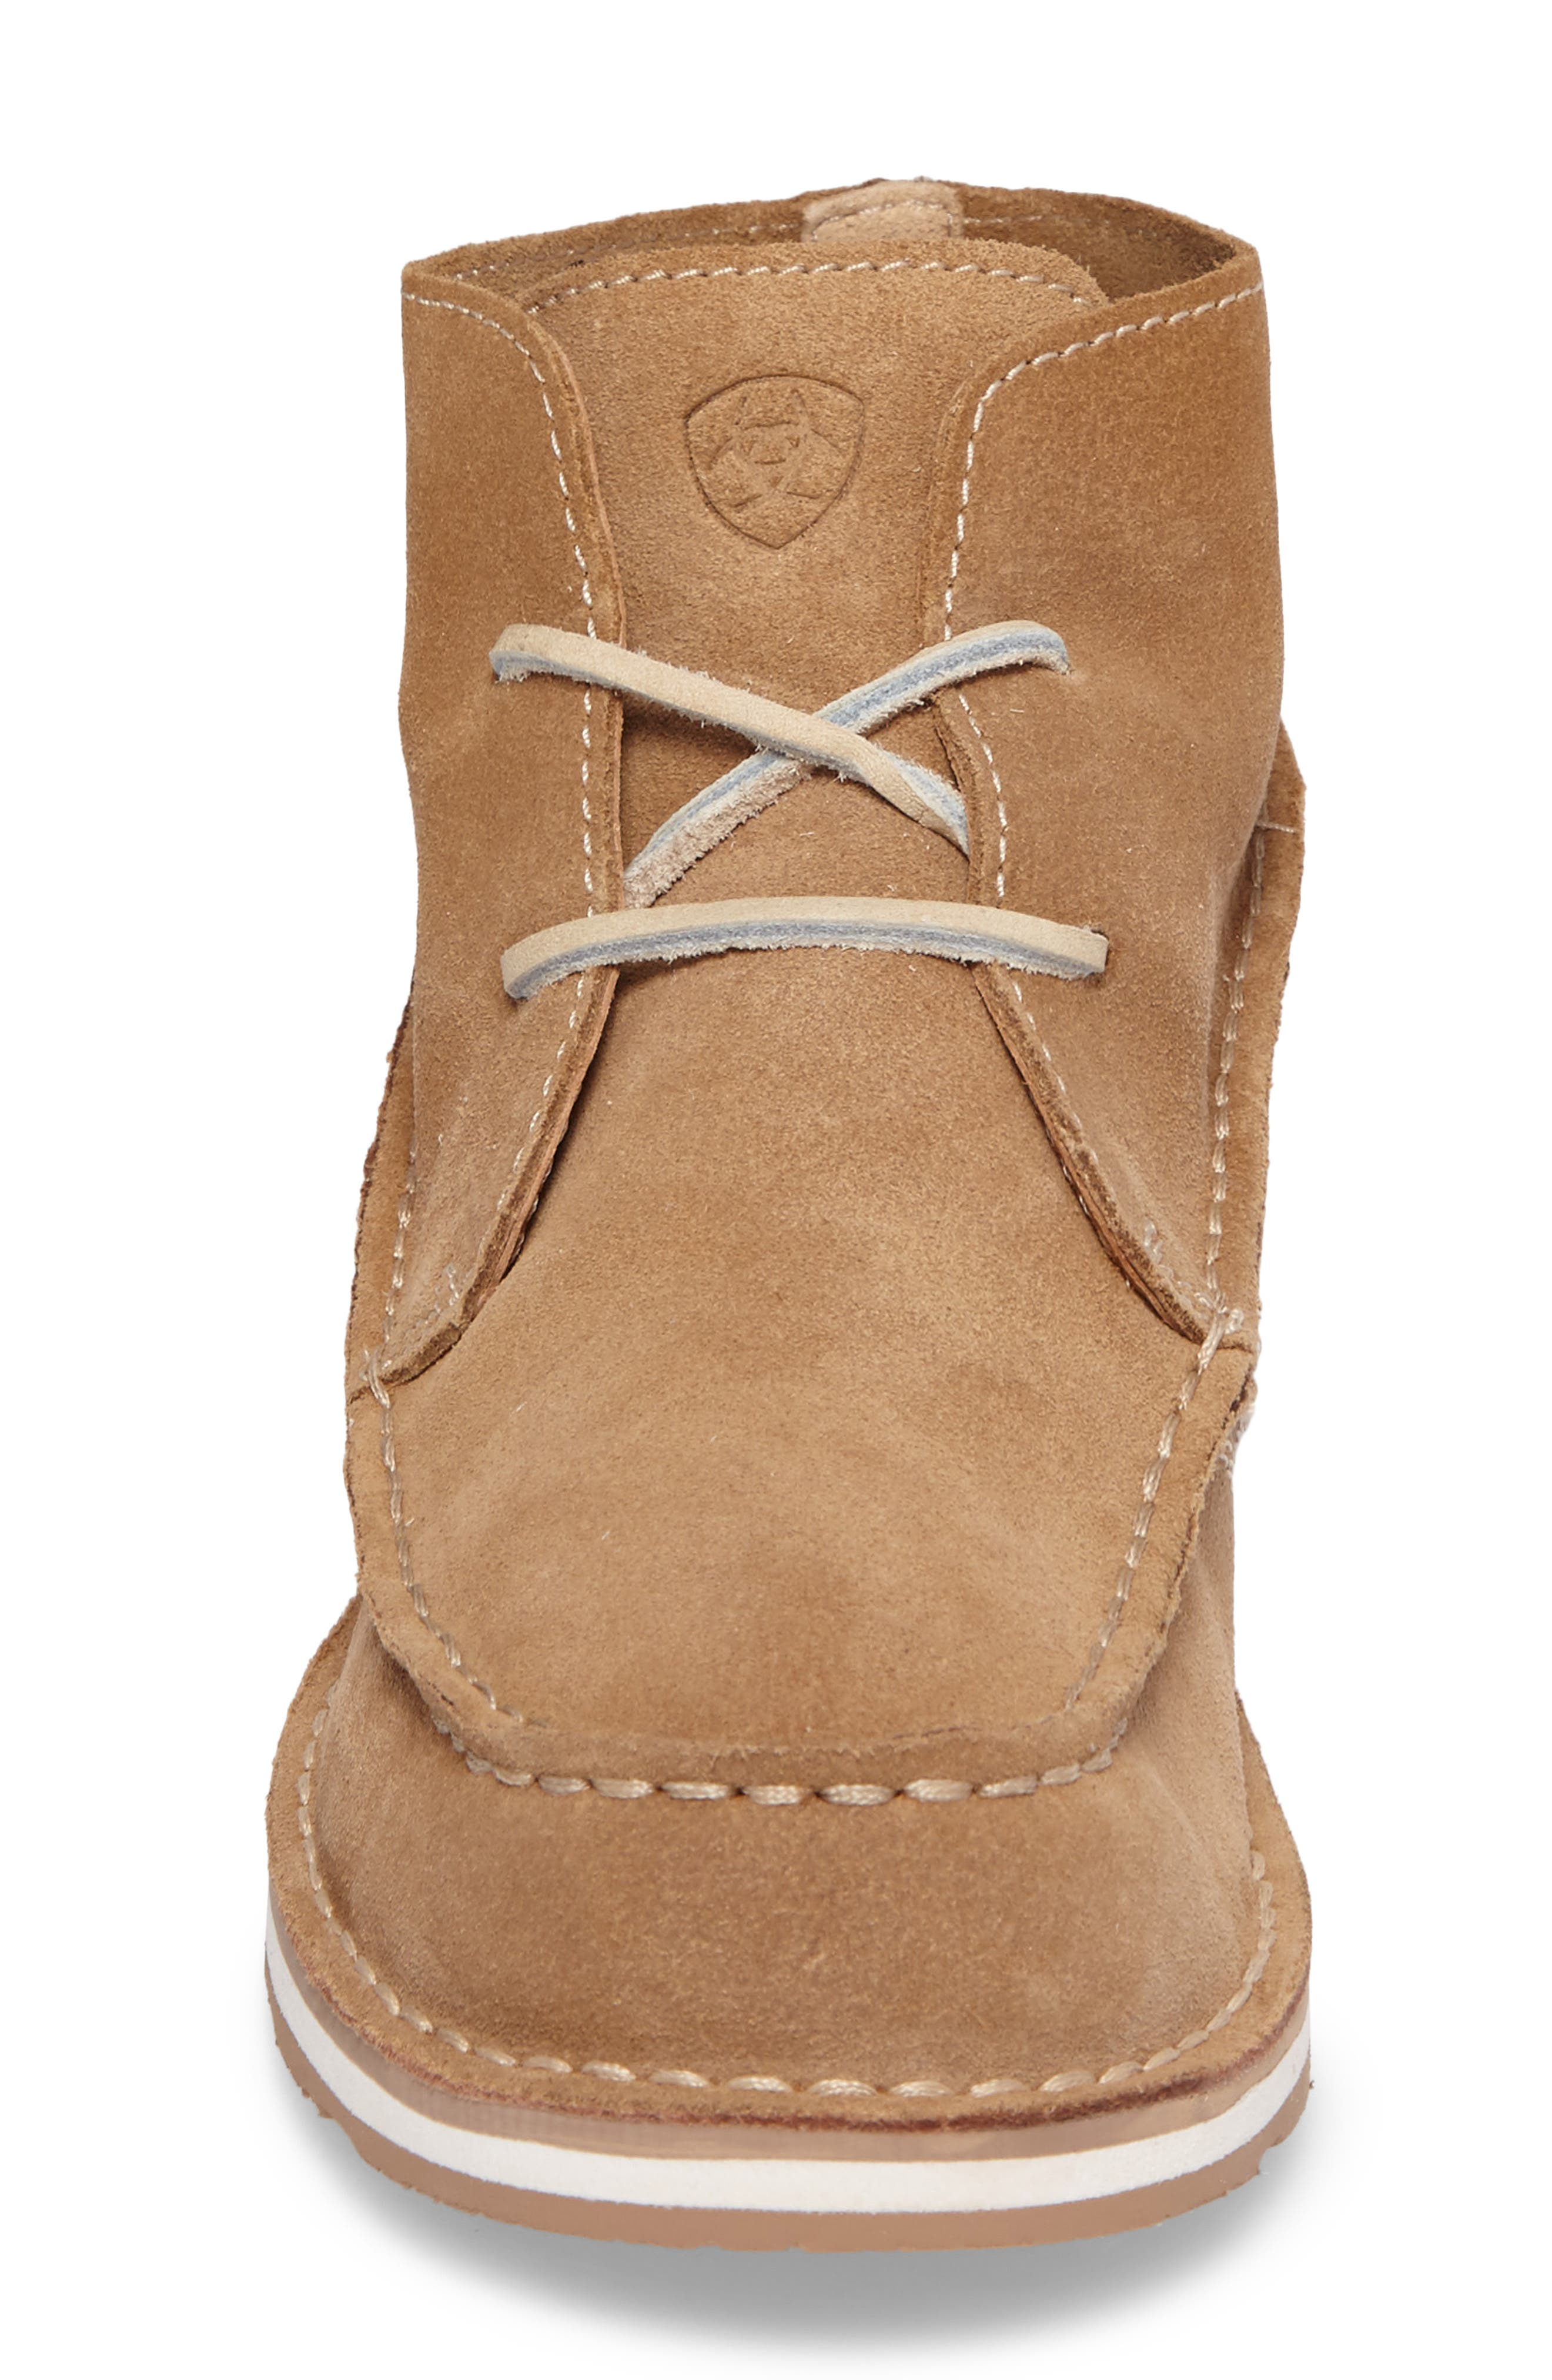 Cruiser Chukka Boot,                             Alternate thumbnail 5, color,                             Lace Dirty Taupe Suede